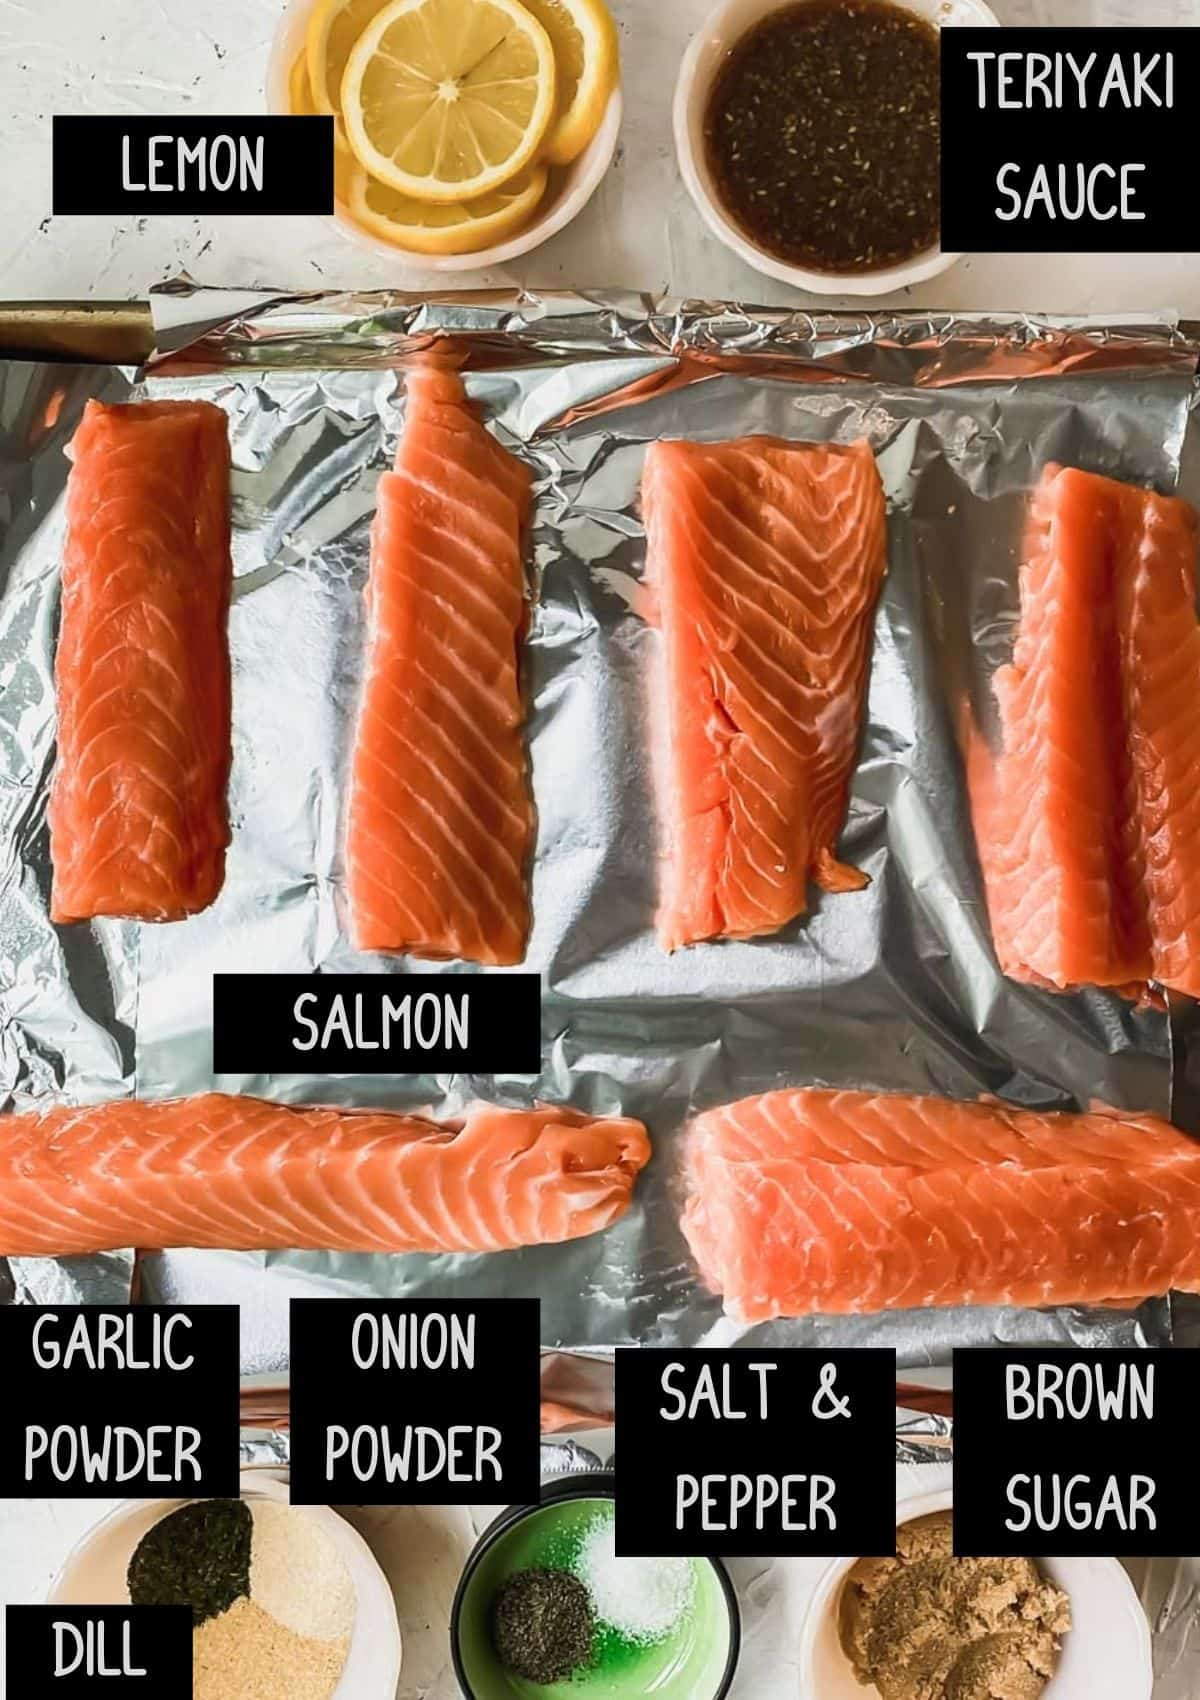 Ingredients for baked teriyaki salmon (see recipe for details)